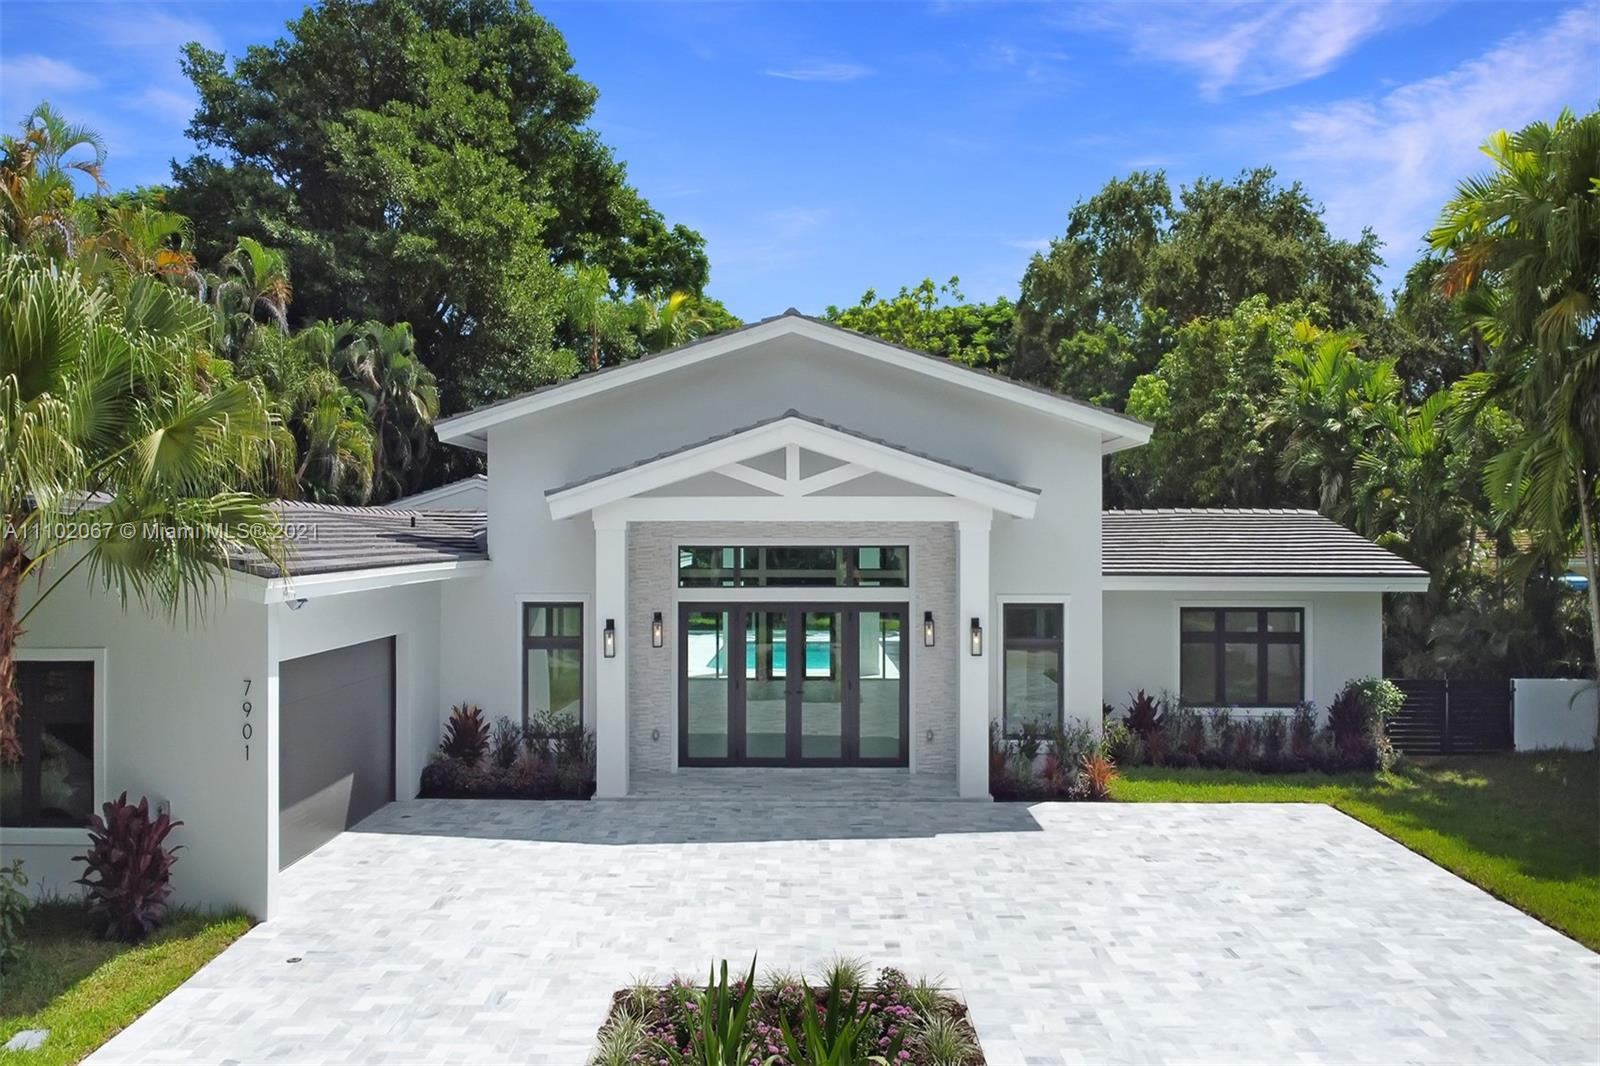 Spectacular 1-story estate located in Coral Gables' Platinum Triangle. Offers soaring ceilings, 6 beds, 7½ baths, and is nestled on a 20,000 sf lot surrounded by lush tropical gardens and mature trees. This 5,267 adj. sf (6,290 total sf) residence was fully gutted and rebuilt in 2021. Everything is new: roof, floors, walls, impact windows, plumbing, electrical, HVAC, septic tanks, kitchen, laundry room, baths, and driveway. Featuring a top-of-the-line kitchen with huge island, Sub Zero and Wolf appliances, wet bar, breakfast area, and walk-in pantry. The luxurious main suite has a sitting area, his and hers walk-in closets, a spa like bath with double showers and a floating tub. The heated resort style pool and spa, summer kitchen, and shaded outdoor terraces are perfect for entertaining.